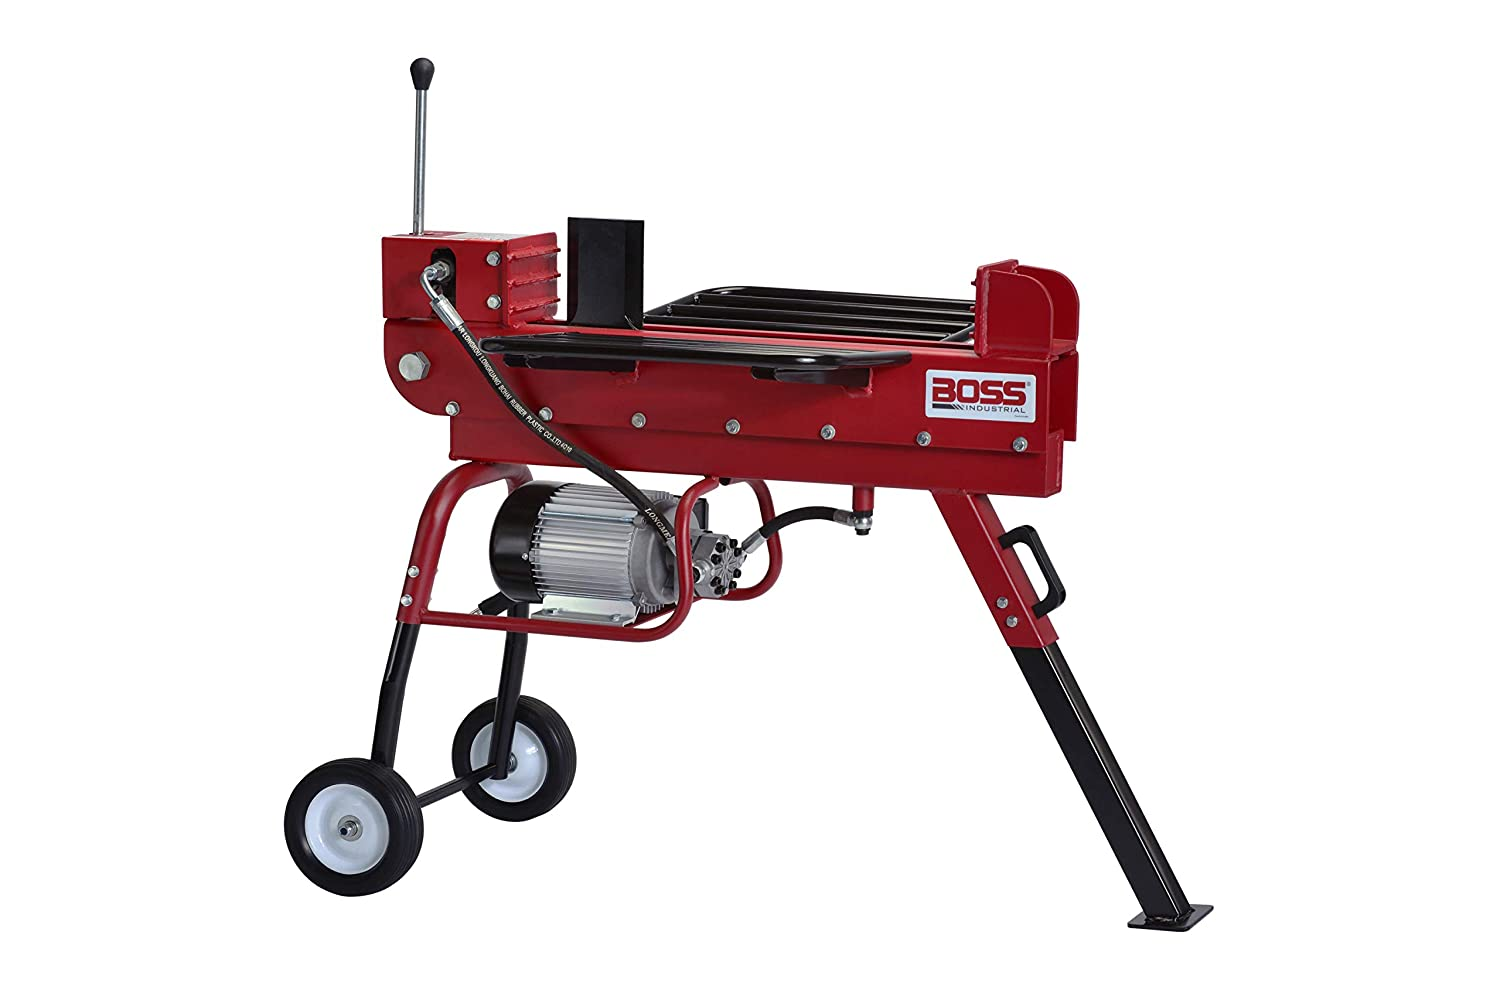 Boss Industrial Ed10t20 10 Ton Electric Log Splitter Columbia Wiring Diagram Patio Lawn Garden